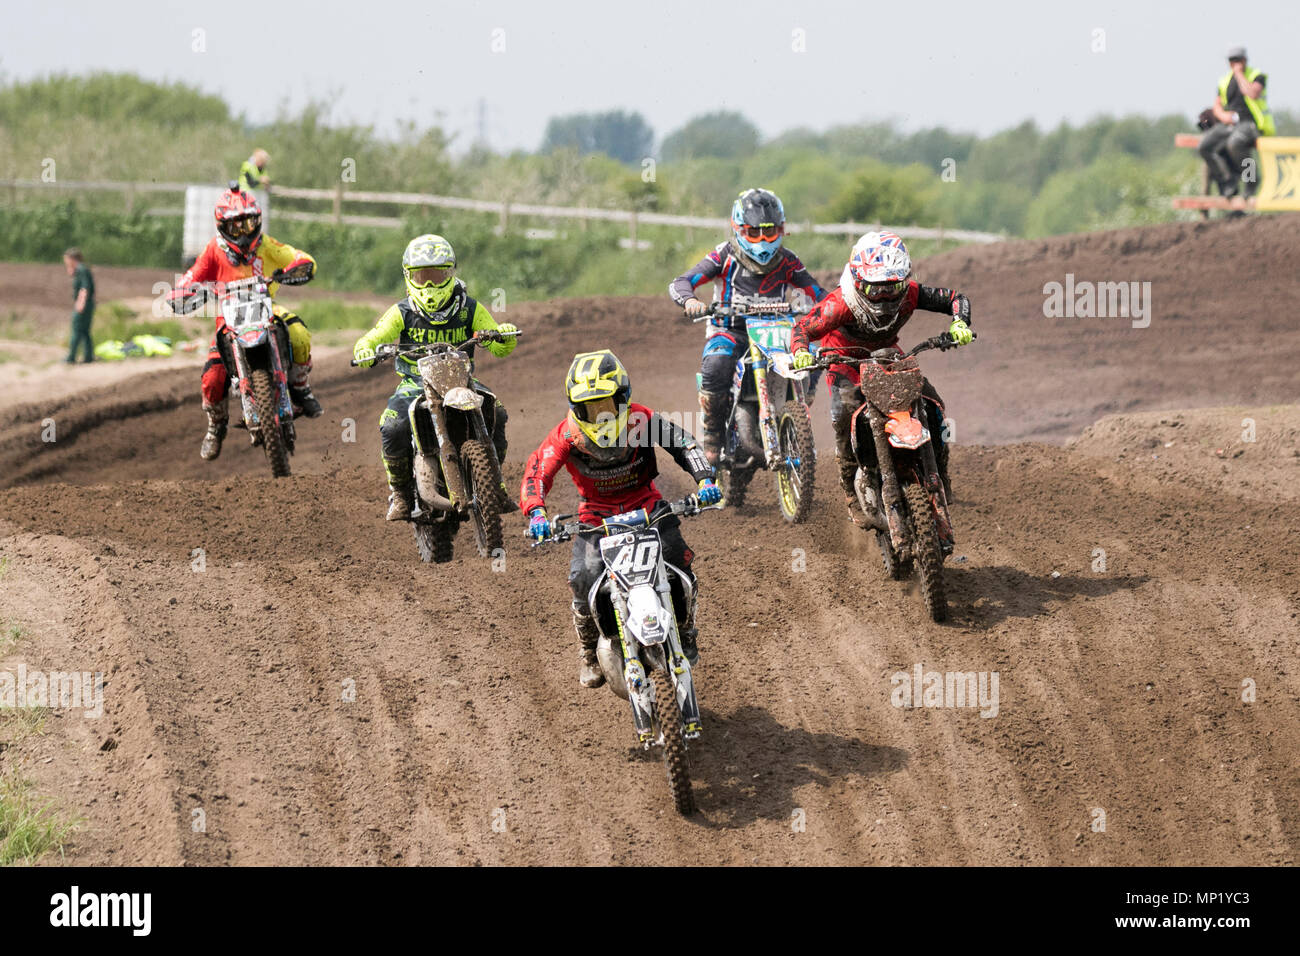 Preston Docks, Lancashire. 20th May 2018.  The cream of British Motocross talent will be taking to the circuit at Preston Docks in Lancashire for the Michelin MX Nationals. The 'Nationals' offers a whole weekend of racing with 26 races over two days, and classes catering for SW/BW 85, MXY1 and 2, MX1 and MX2 Clubman right through to the Pro MX1 and MX2 'Fastest 40'; the stage is set for an action-packed programme of British championship racing at the very top of its game.  Credit: Cernan Elias/Alamy Live News Stock Photo